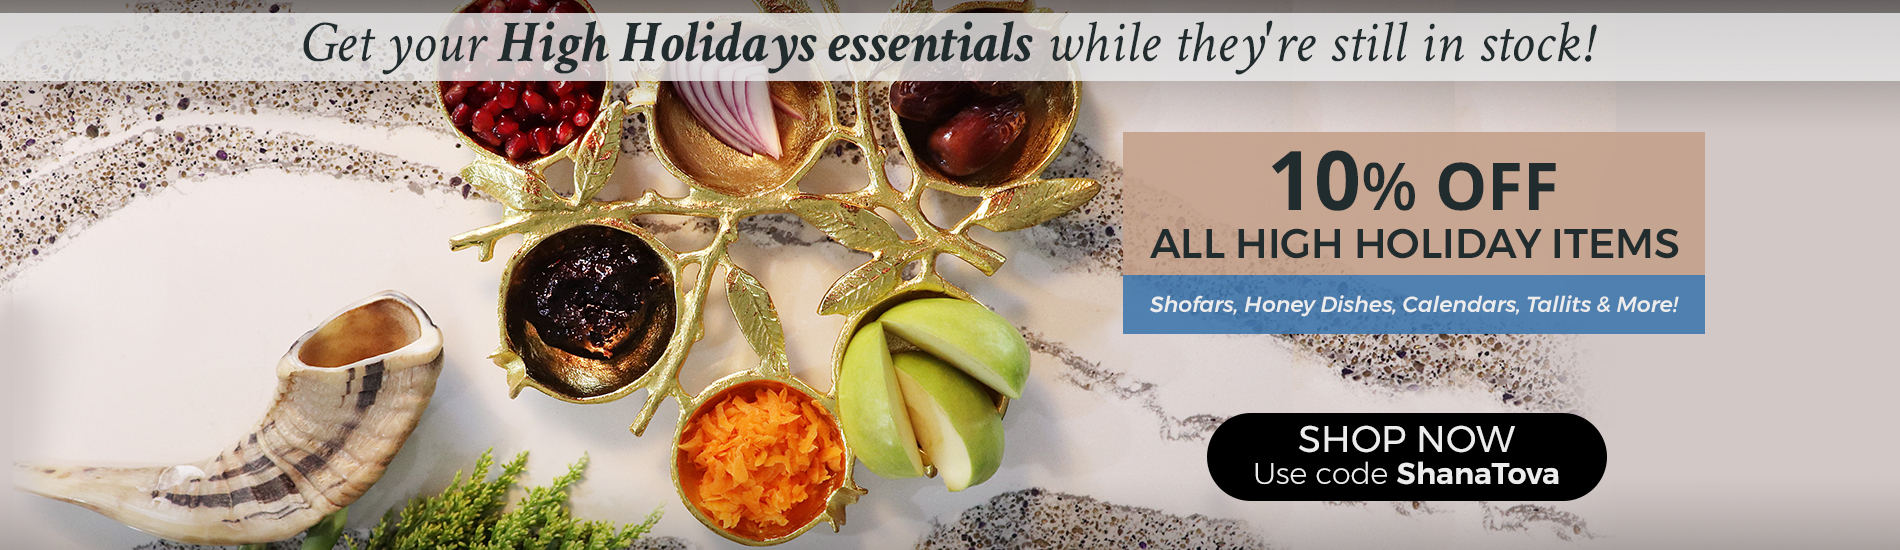 Shop for Rosh Hashanah at Judaica.com!